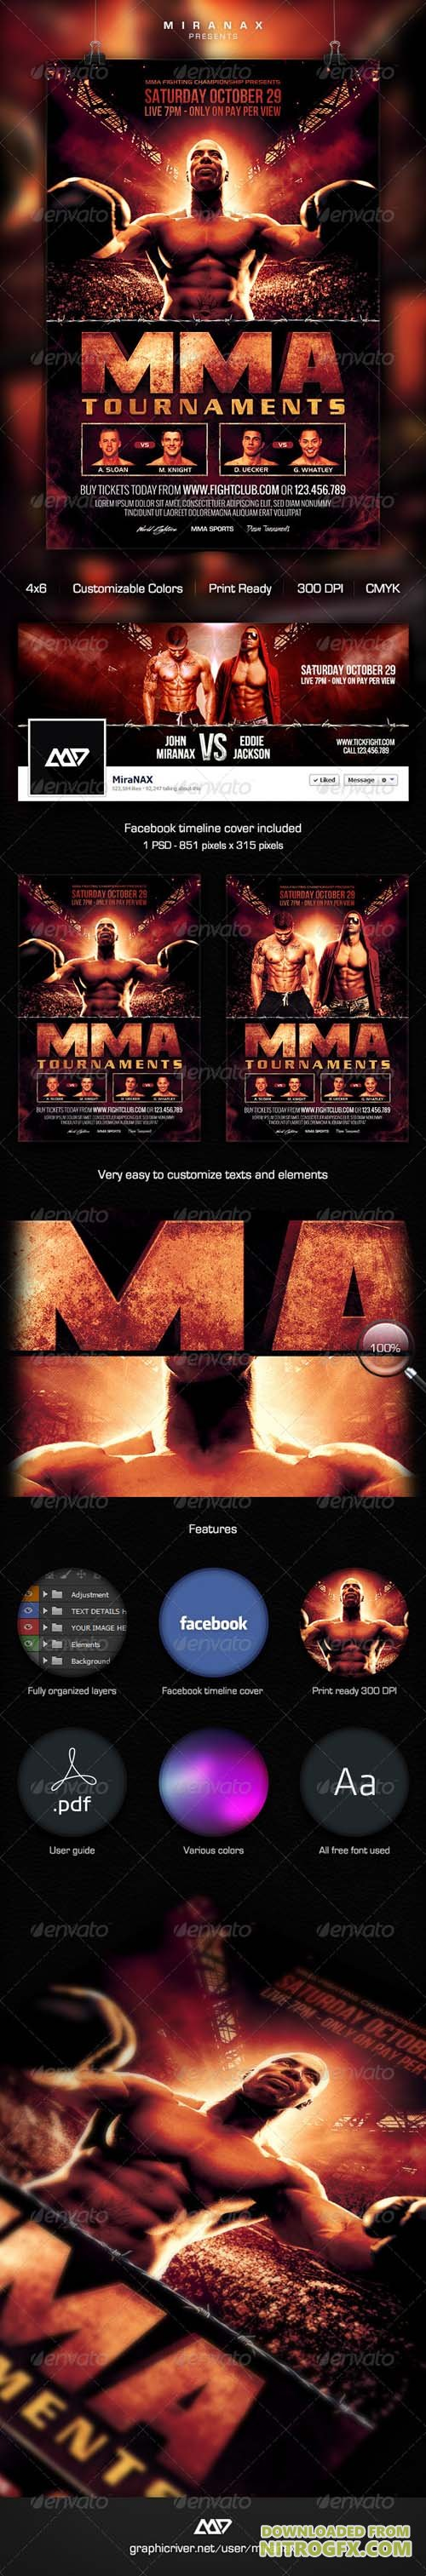 GR - MMA - Boxing Fight Cinematic Flyer Template 8046082